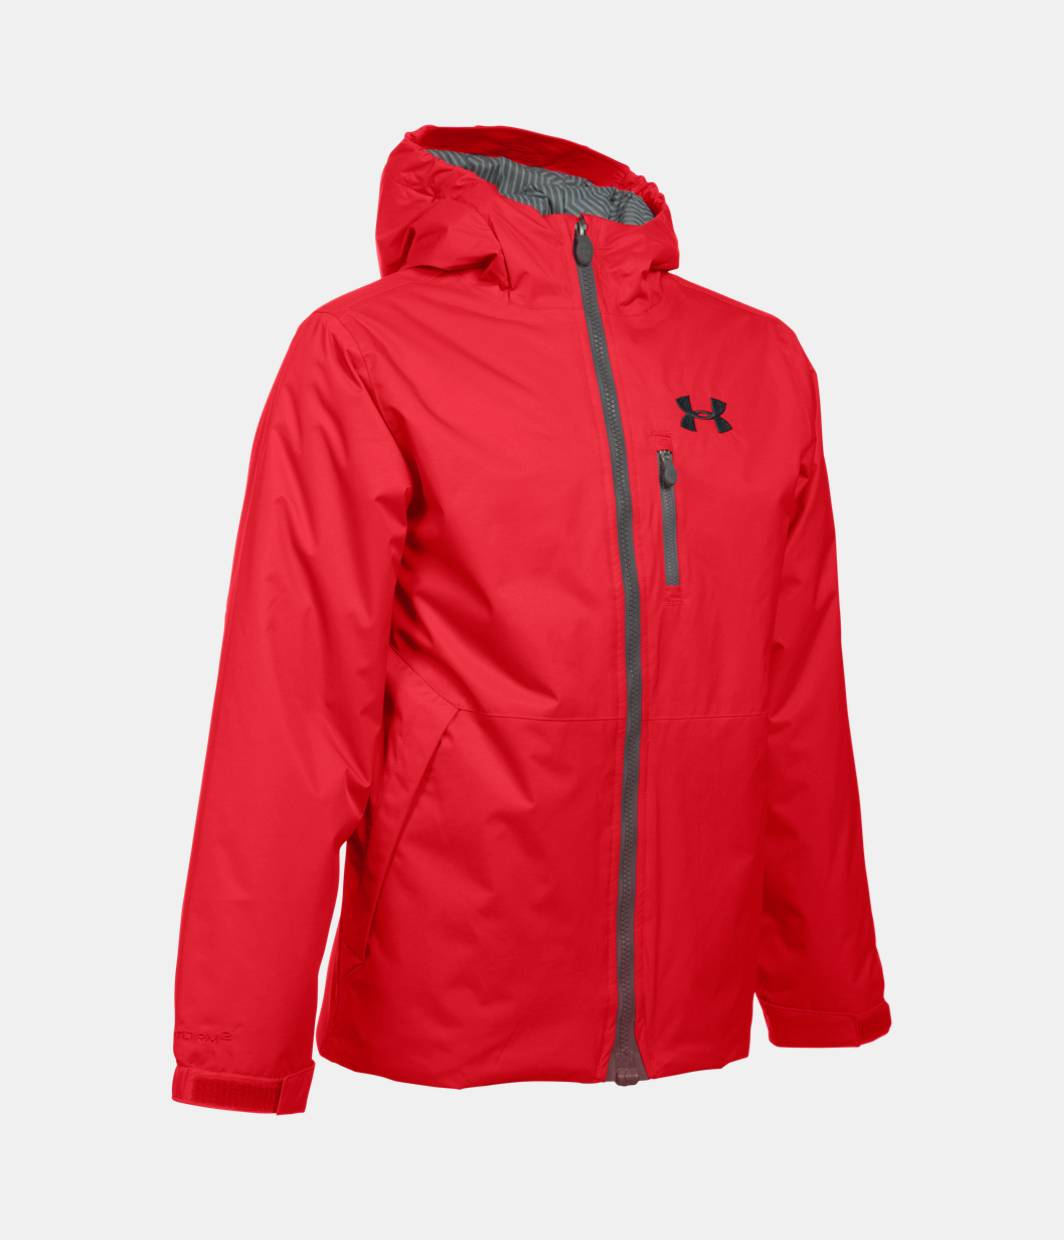 Boys' ColdGear® Reactor Yonders Jacket | Under Armour US